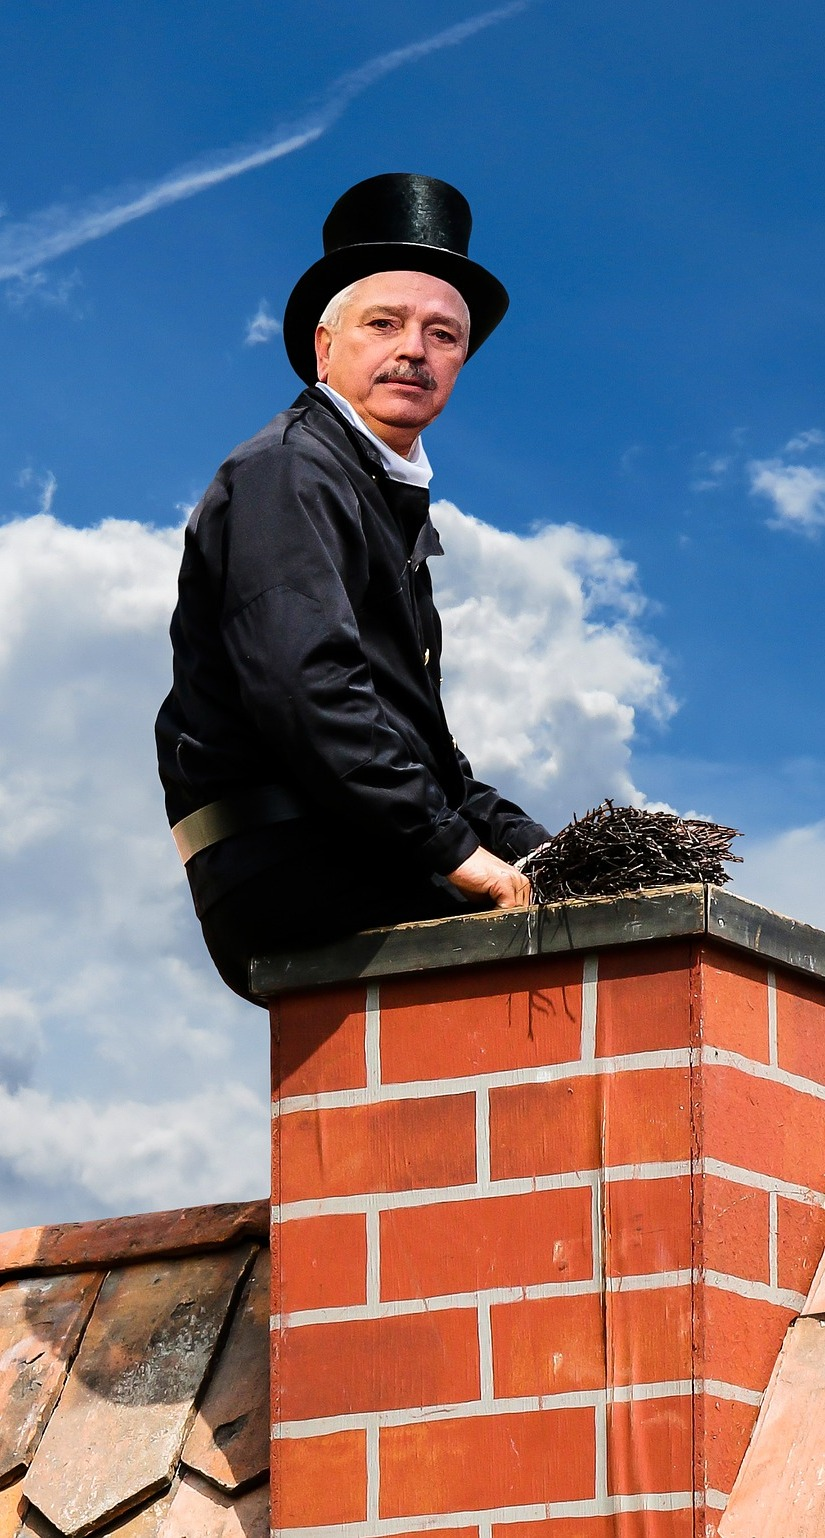 A man on a chimney.